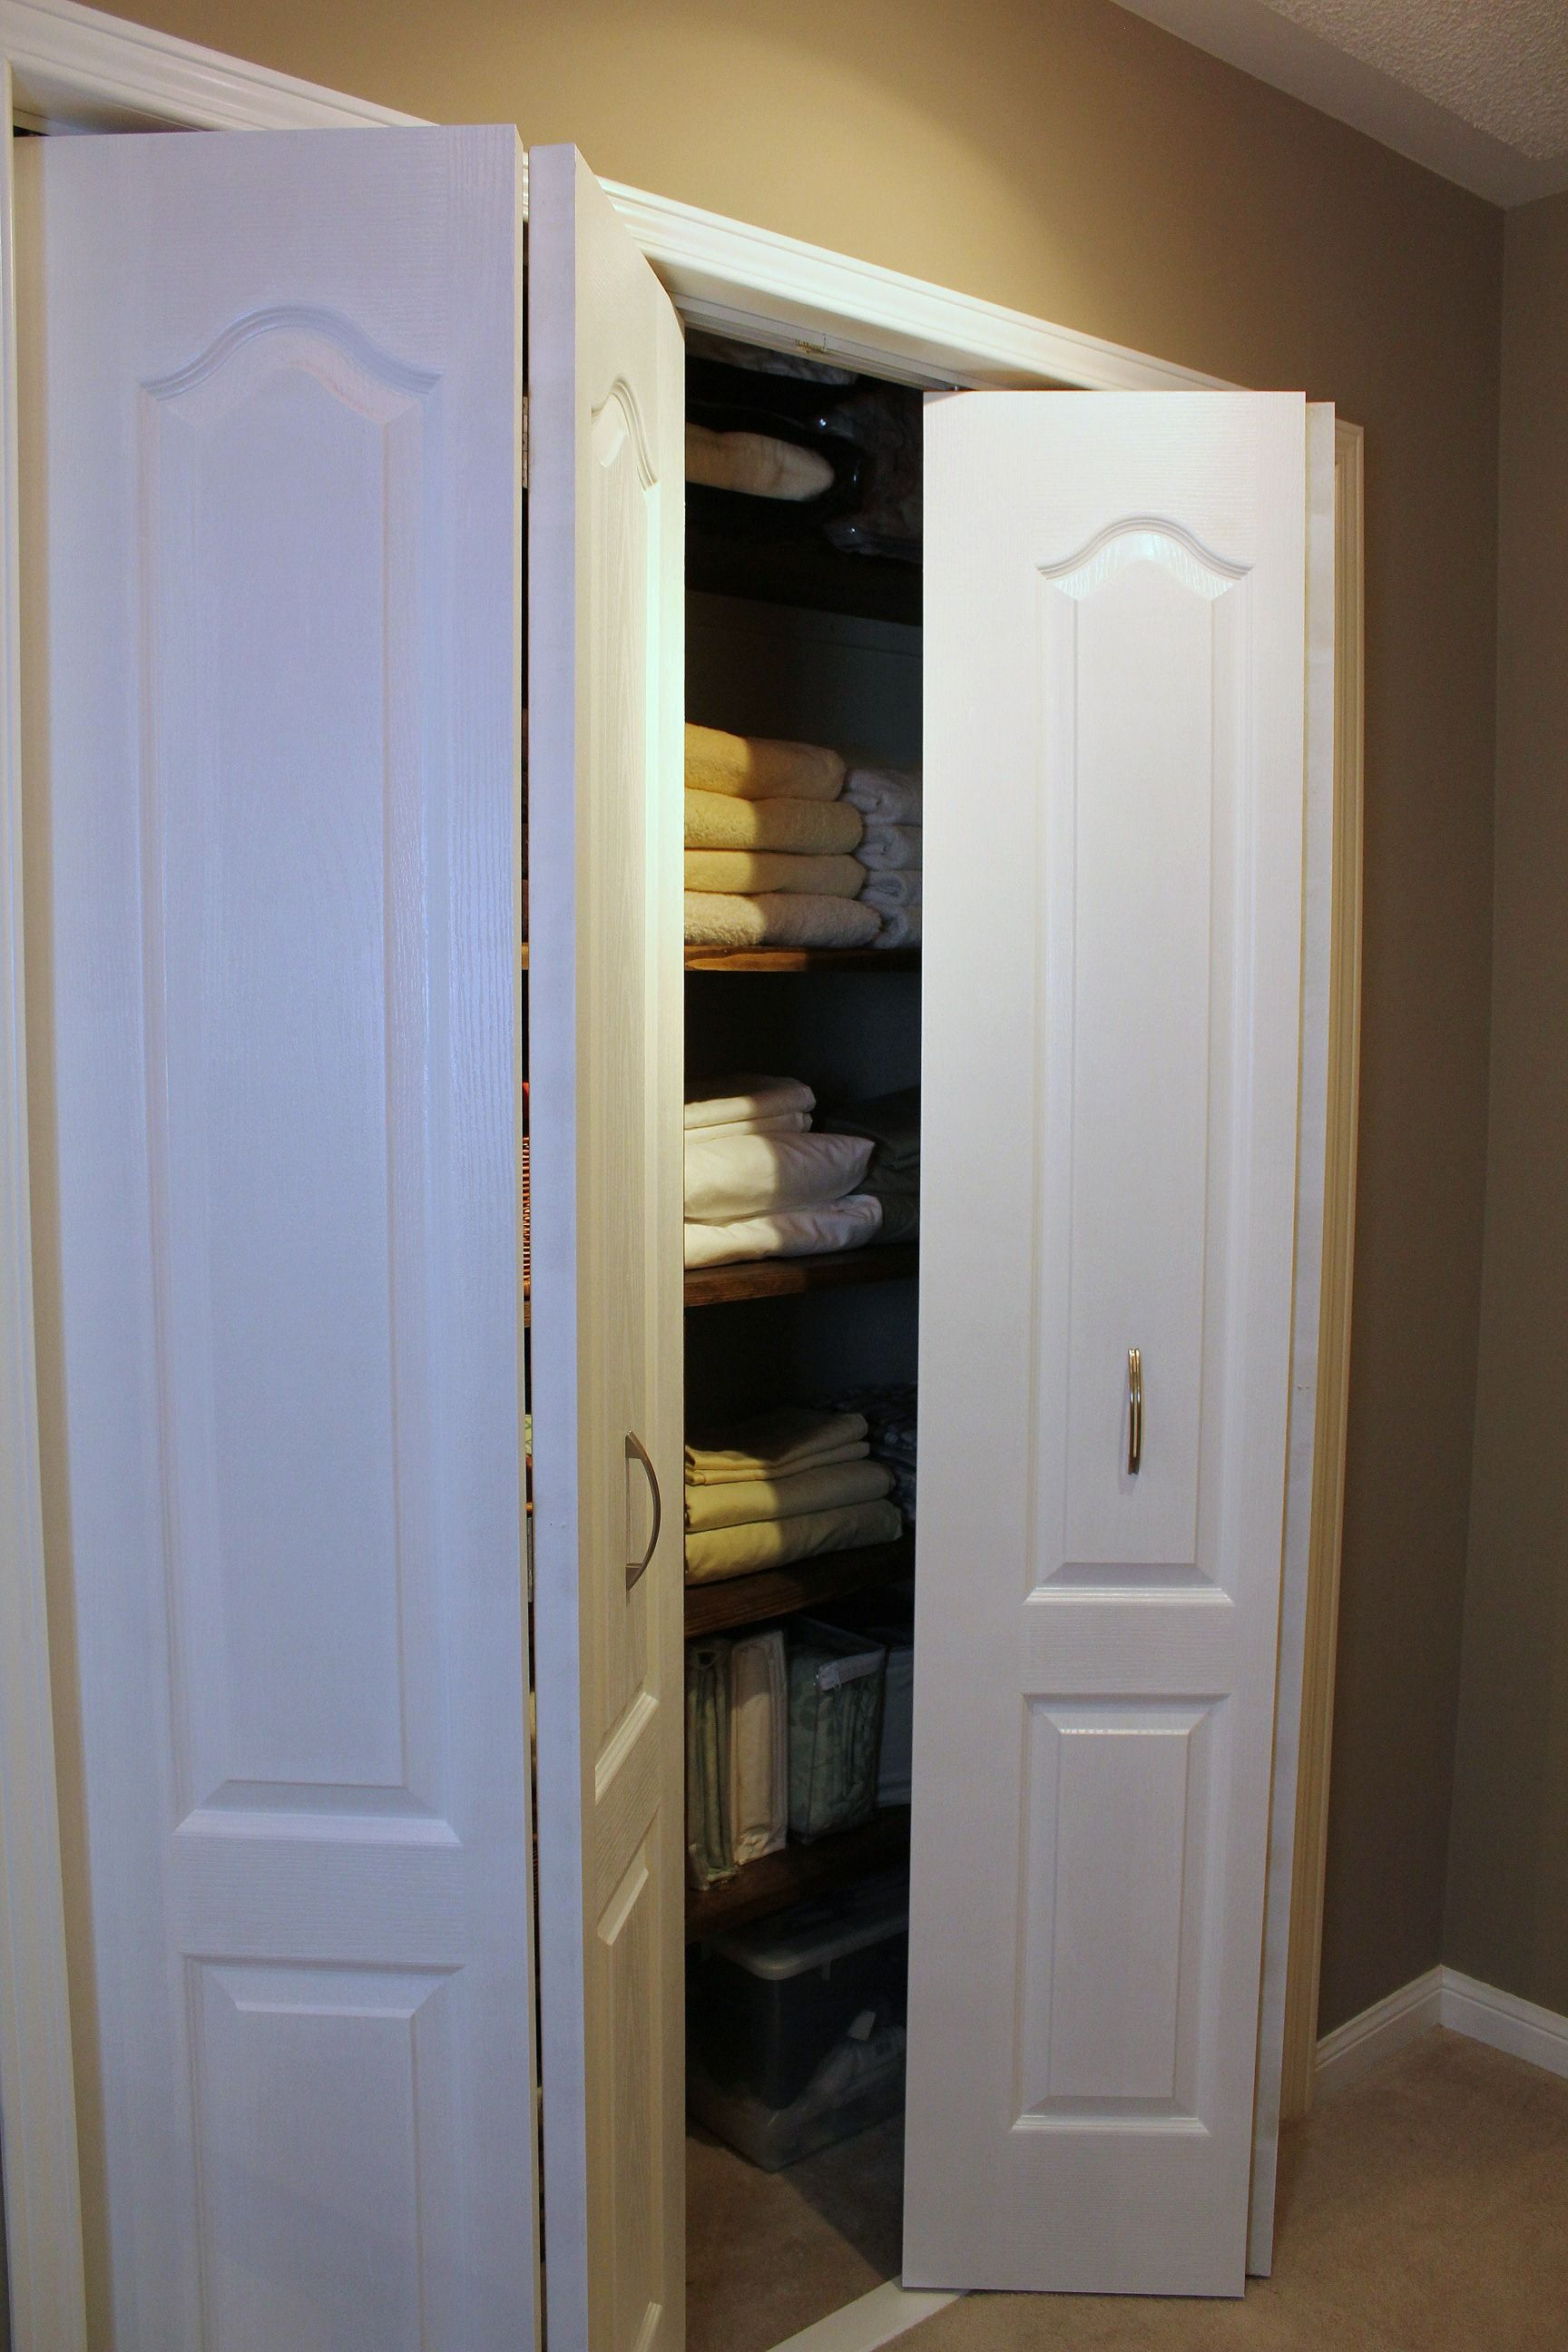 How To Change Sliding Bifold Closet Doors